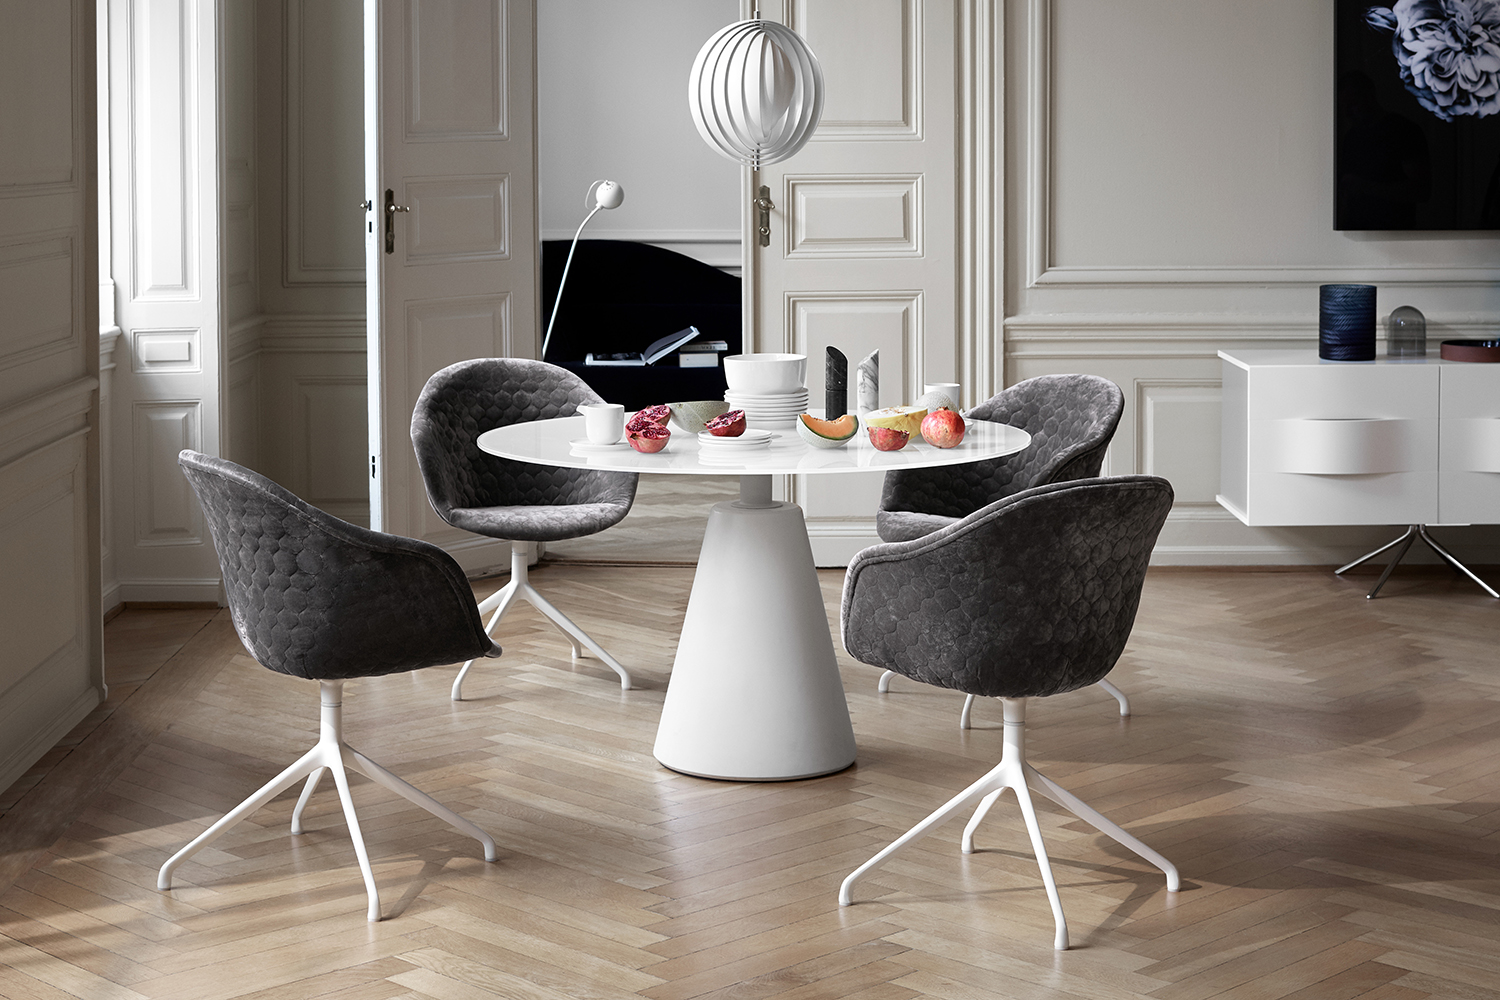 Madrid round dining table